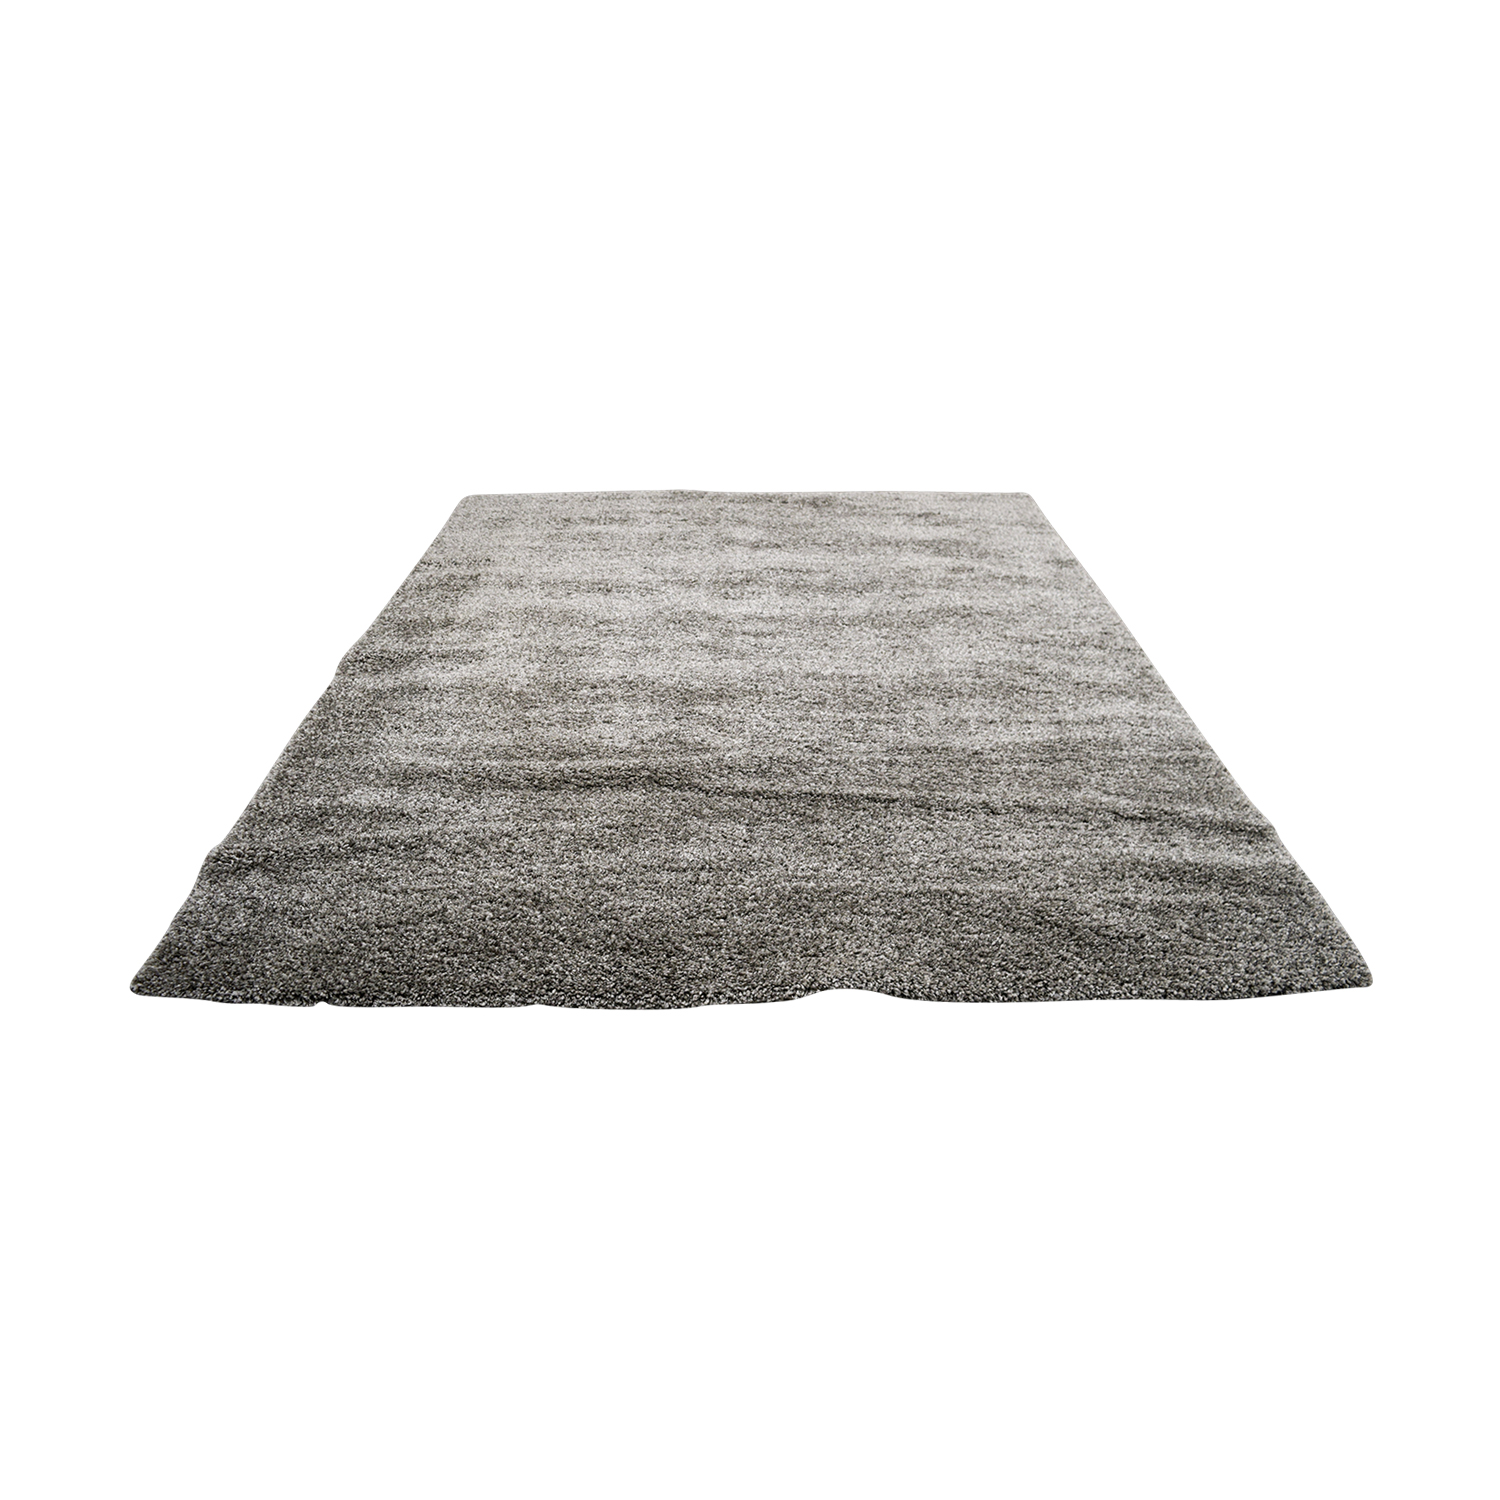 shop Safavieh Safavieh Braided Light Gray Rectangle Shag Rug online